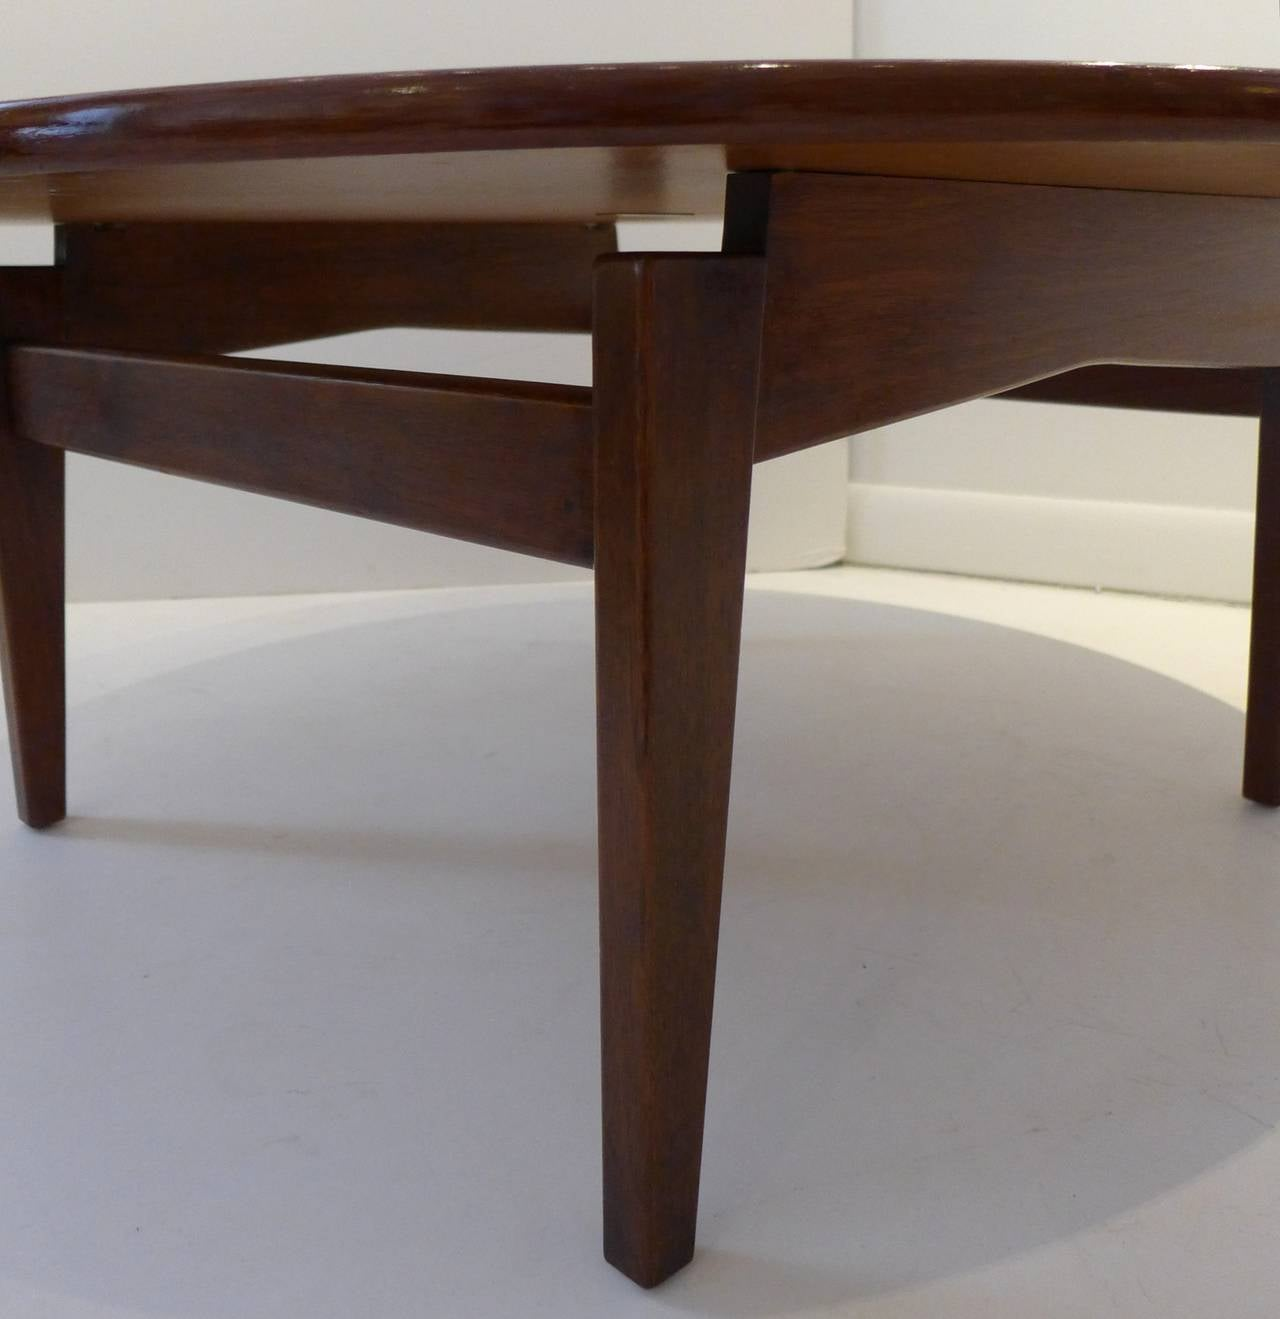 Laminated Jens Risom Cocktail Table with White Laminate Top For Sale